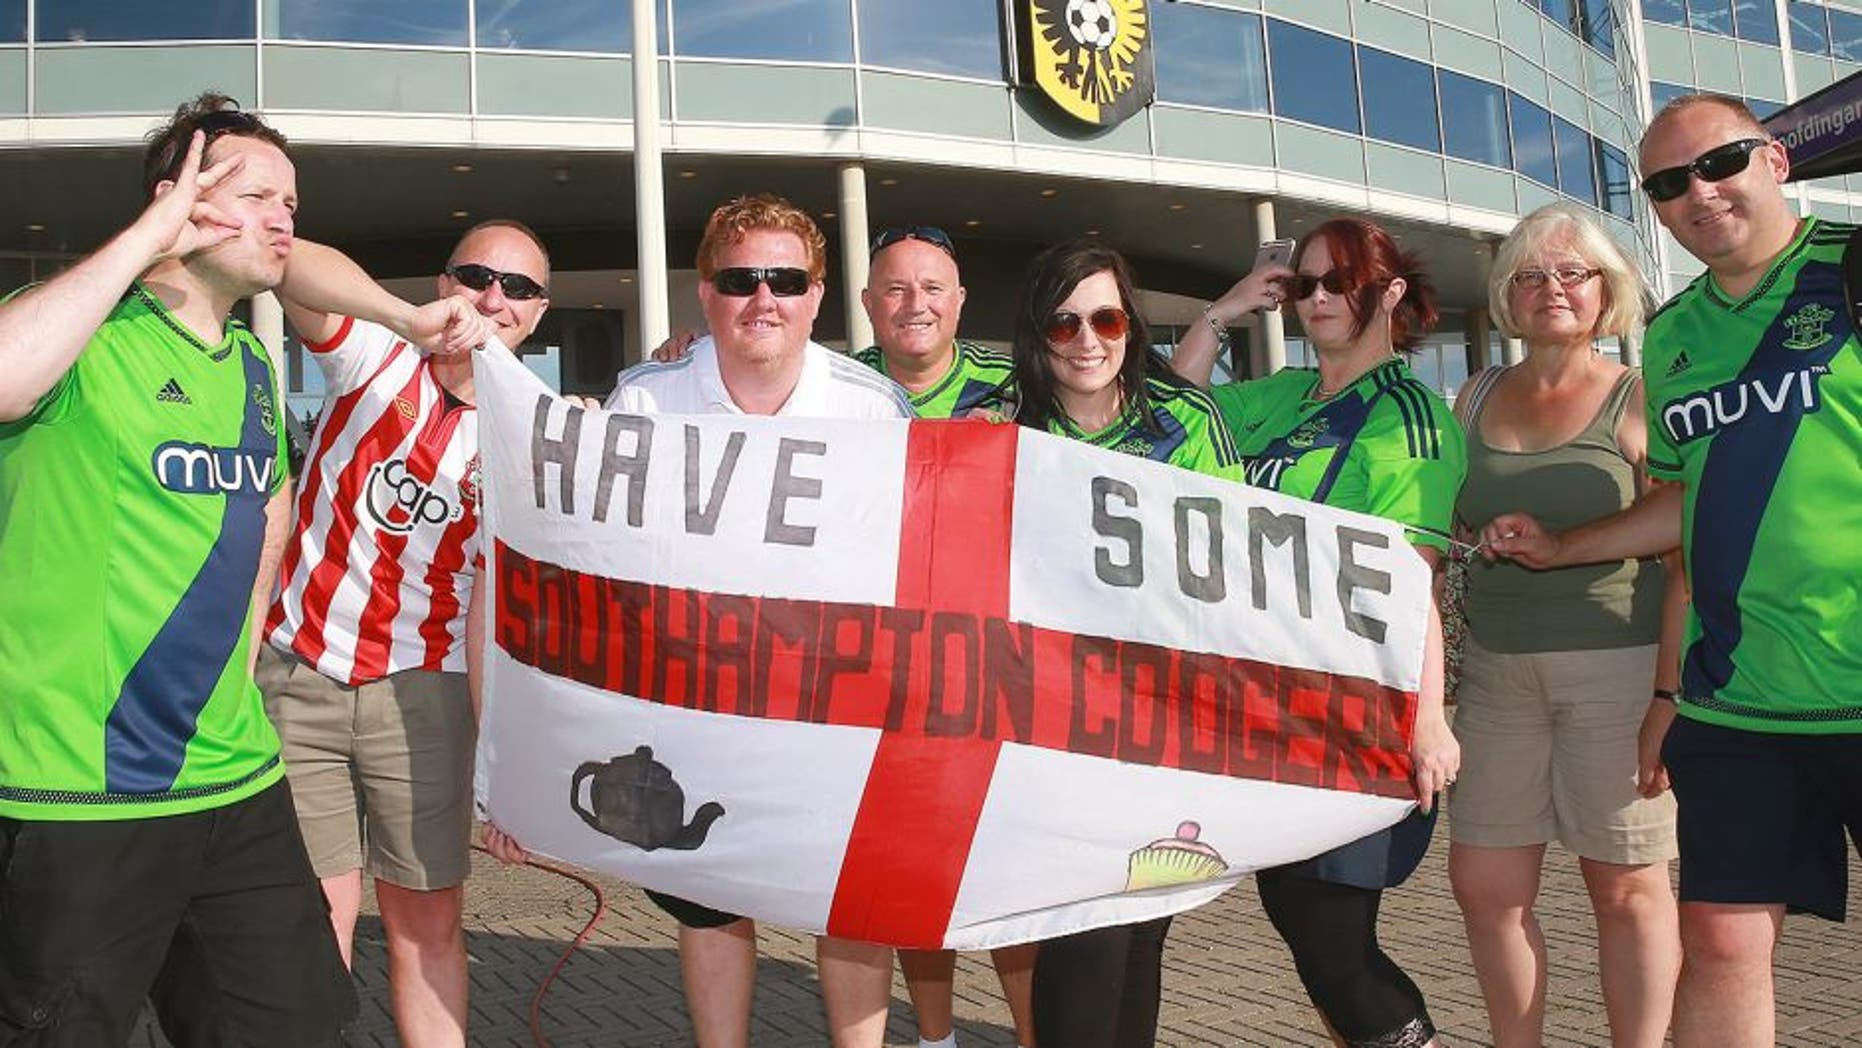 fans of Southampton during the Europa league third qualifying round match between Vitesse and Southampton FC on August 6, 2015 at the Gelredome stadium in Arnhem, The Netherlands.(Photo by VI Images via Getty Images)